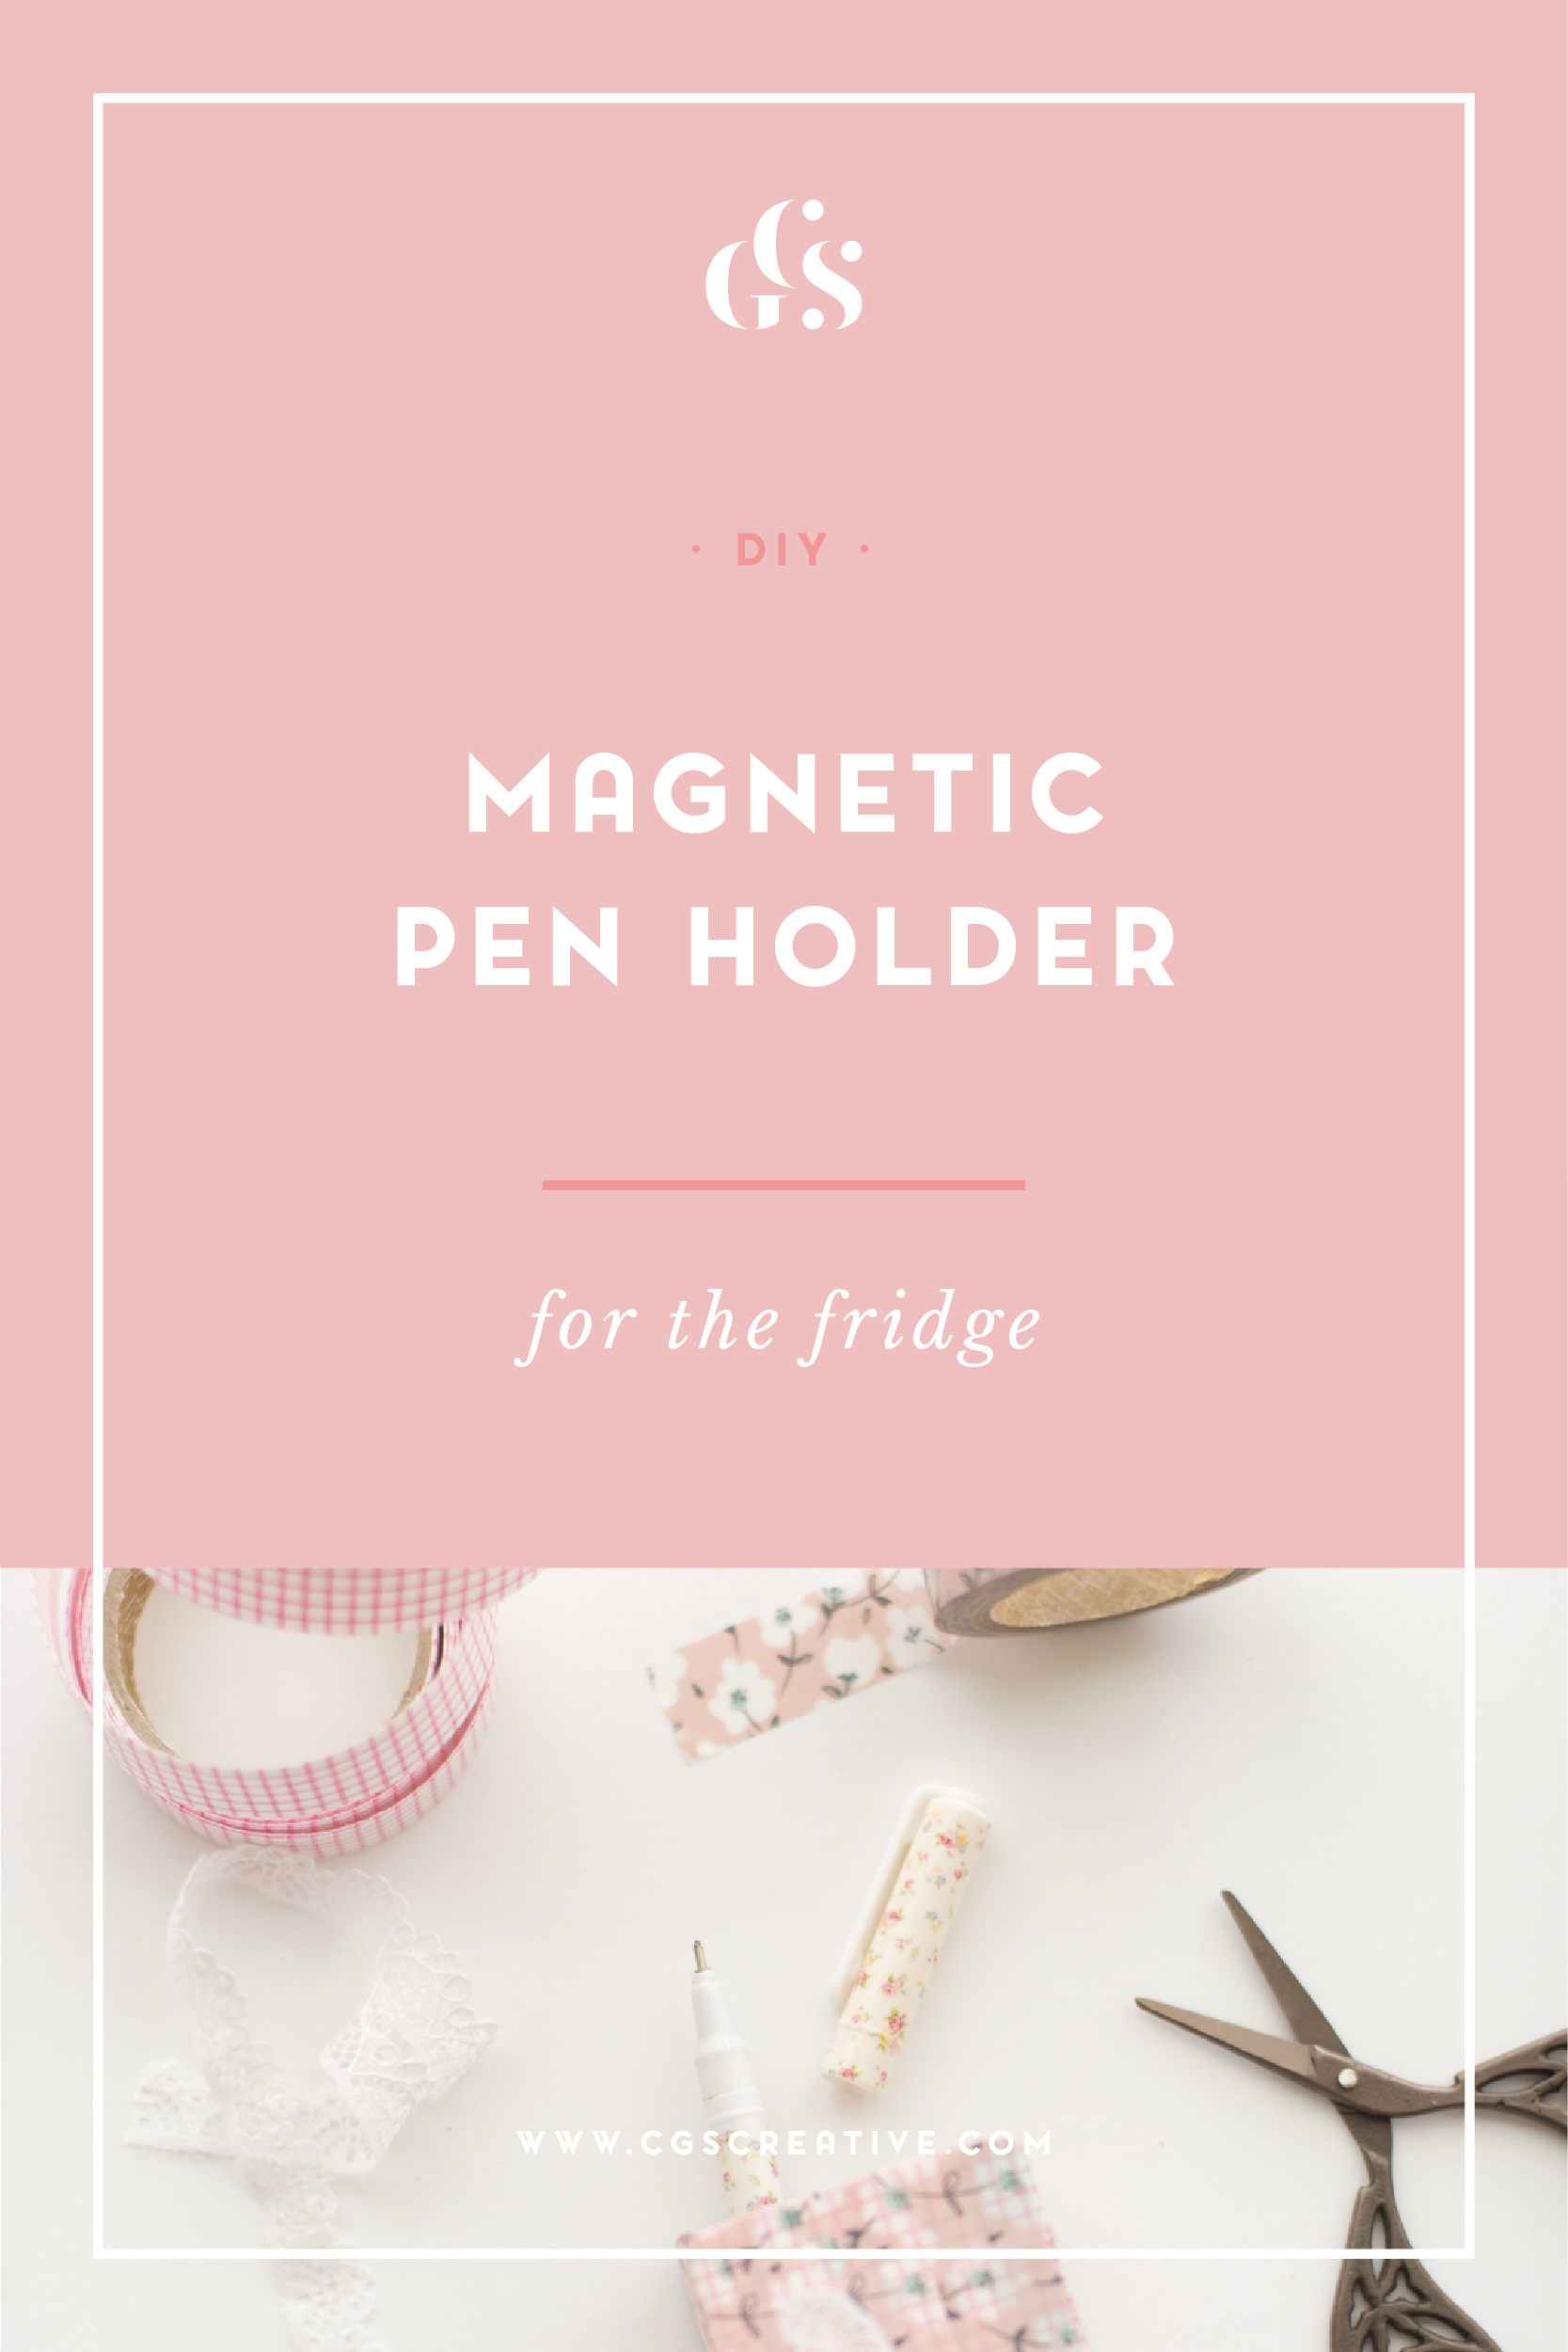 DIY magnetic pen holder for the fridge